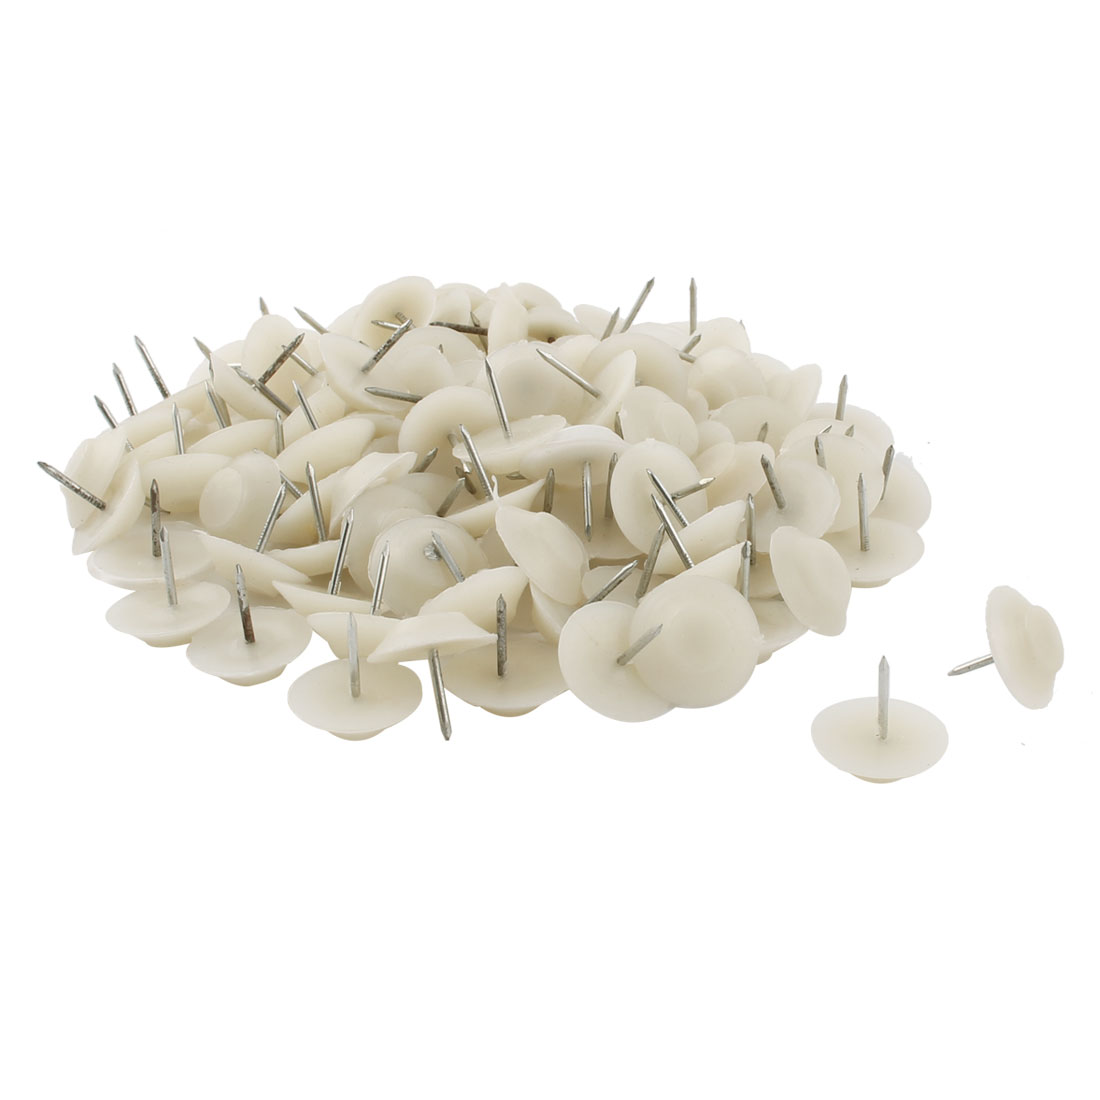 Furniture Chair Table Plastic Non-slip Floor Protector Nails Beige 1.8cm Dia 100pcs